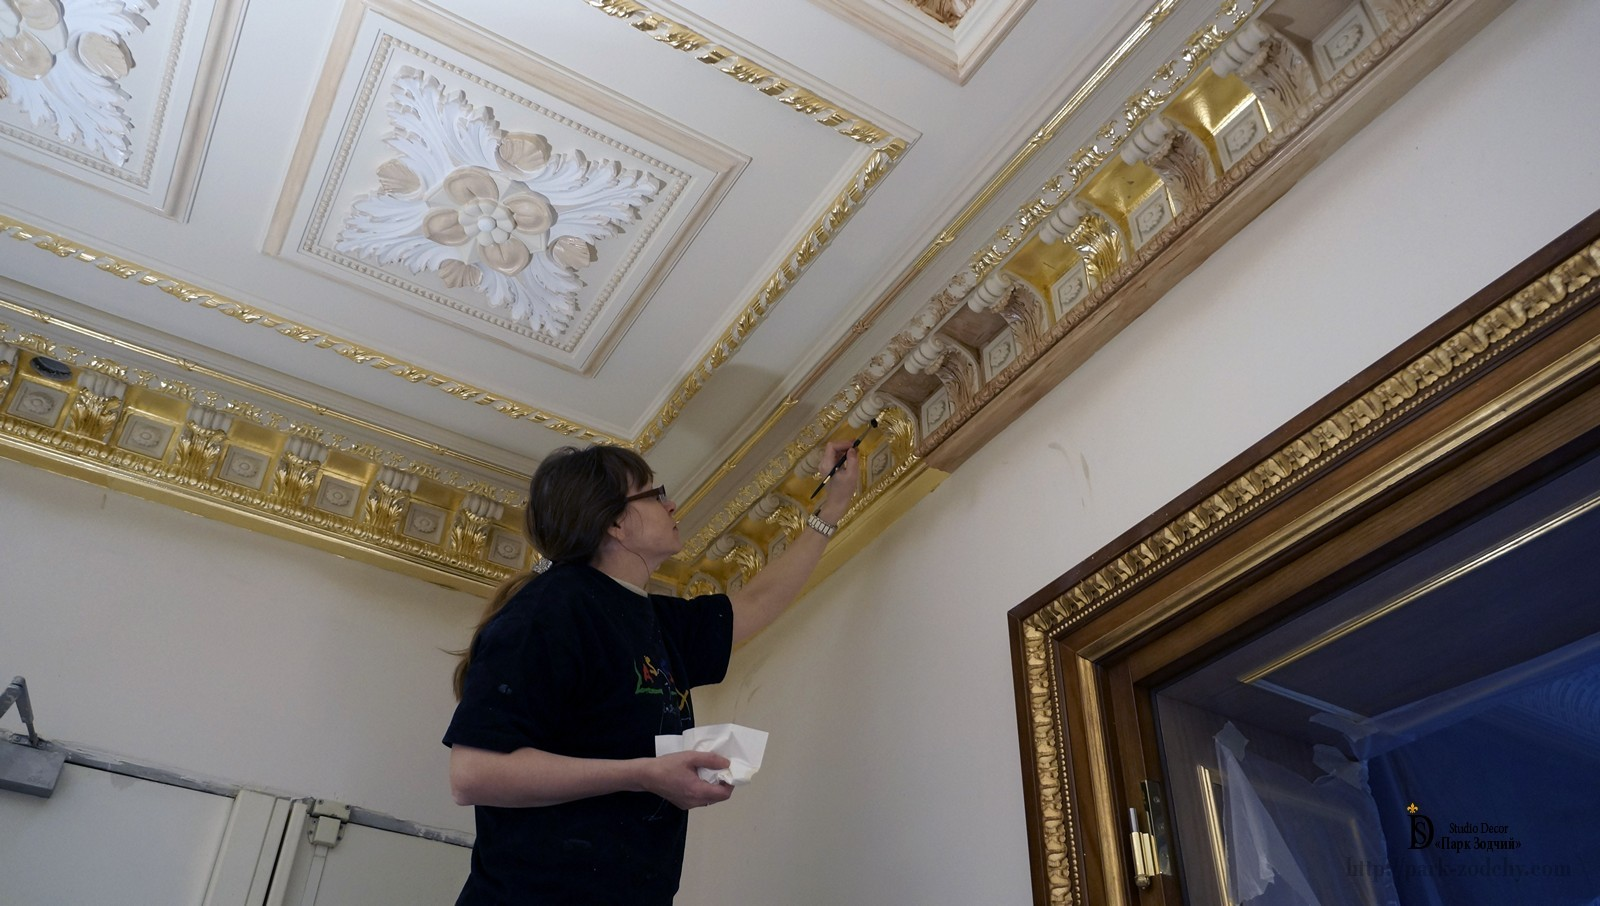 The gilded mouldings